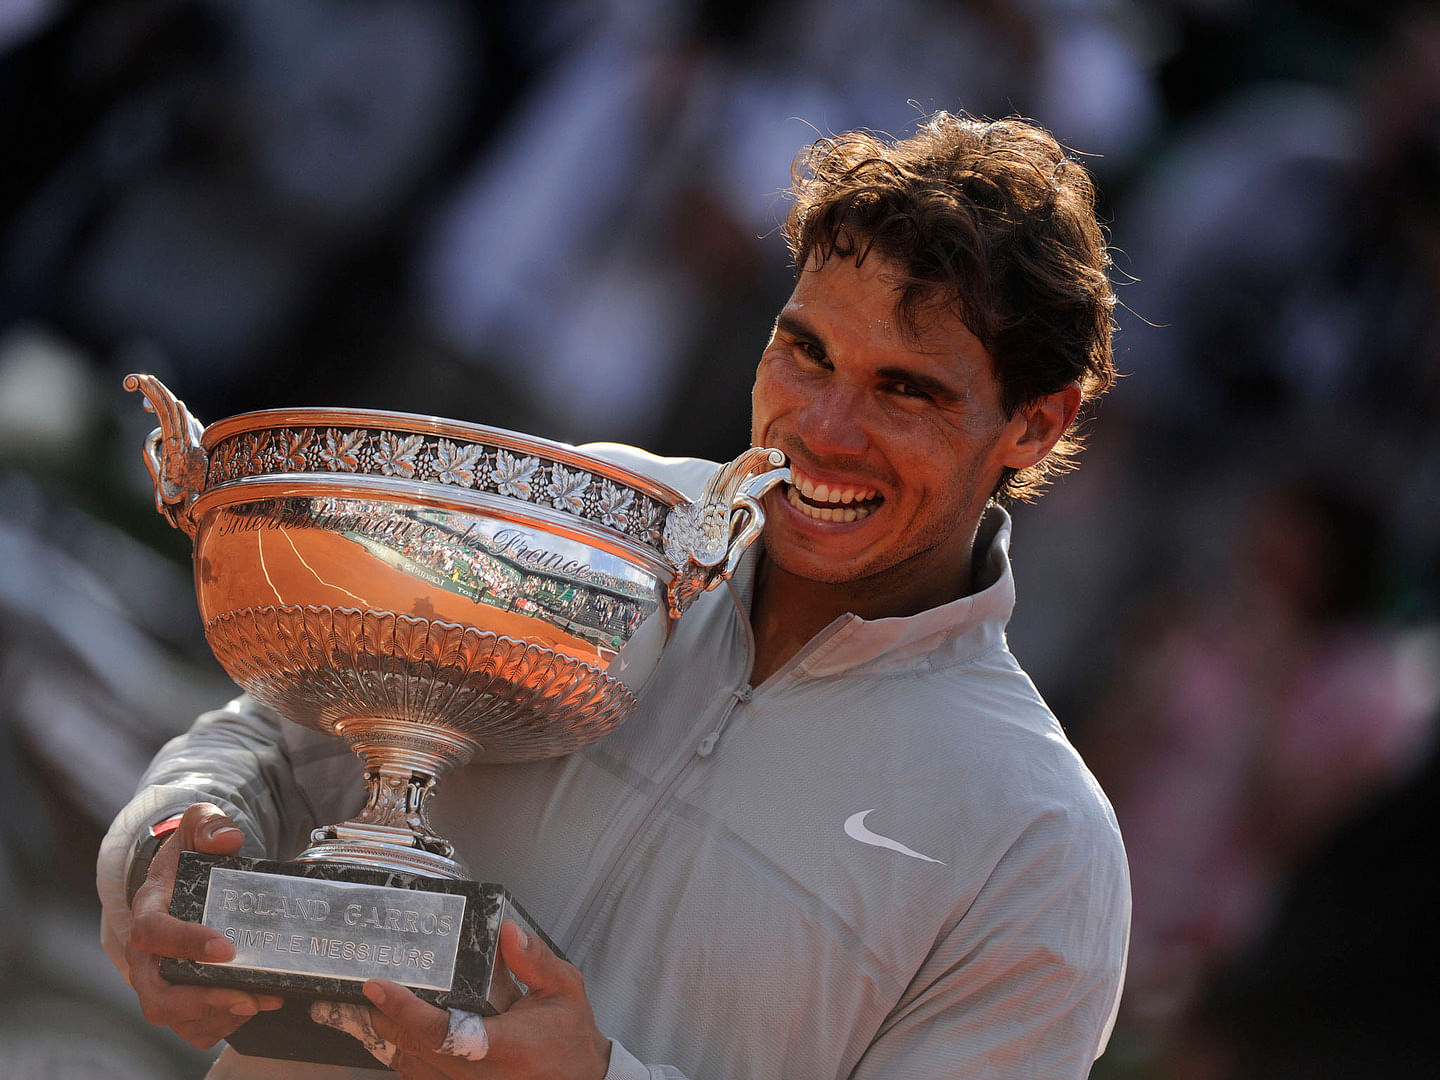 Is Rafael Nadal the greatest tennis player ever?